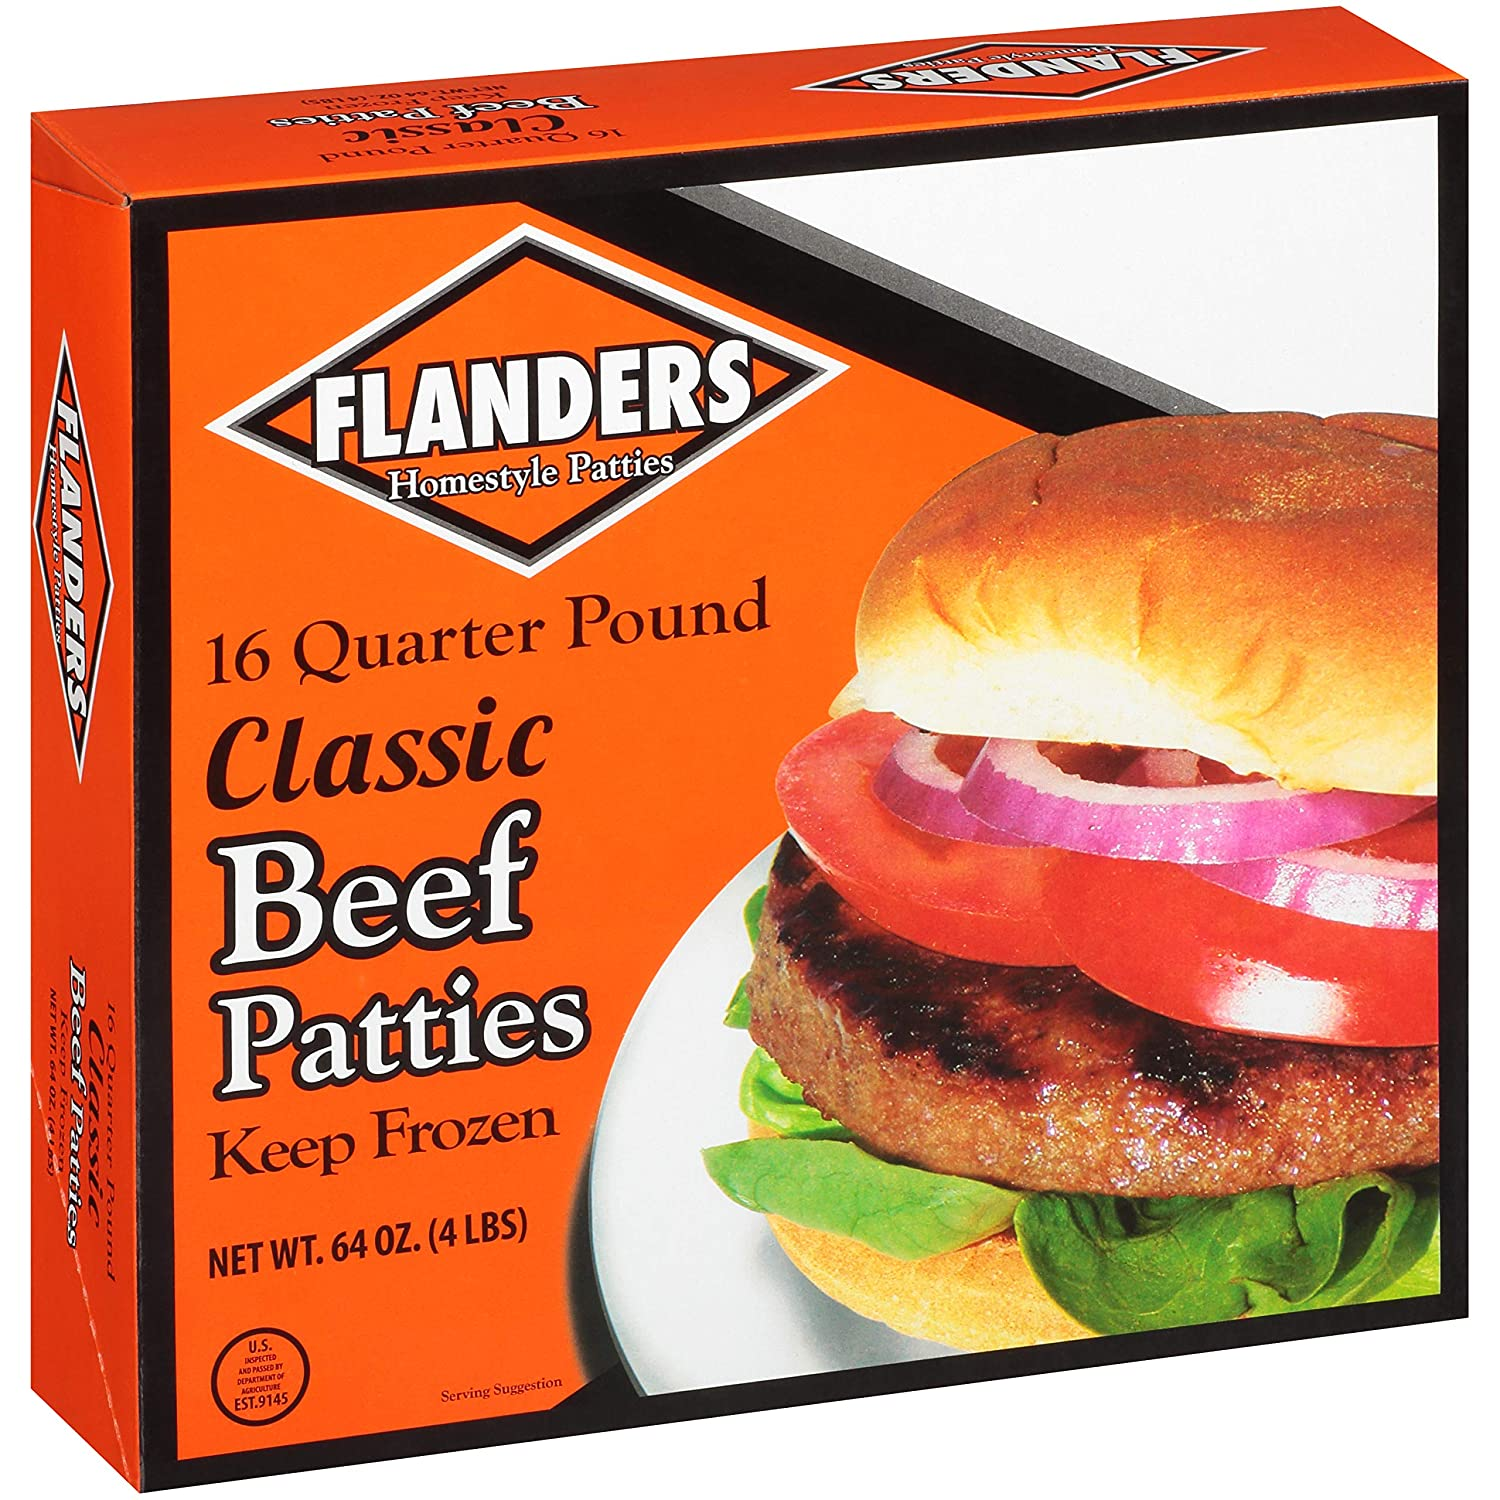 FLANDERS Limited time trial price BEEF PATTIES 64 OF OZ 2 Popular products PACK